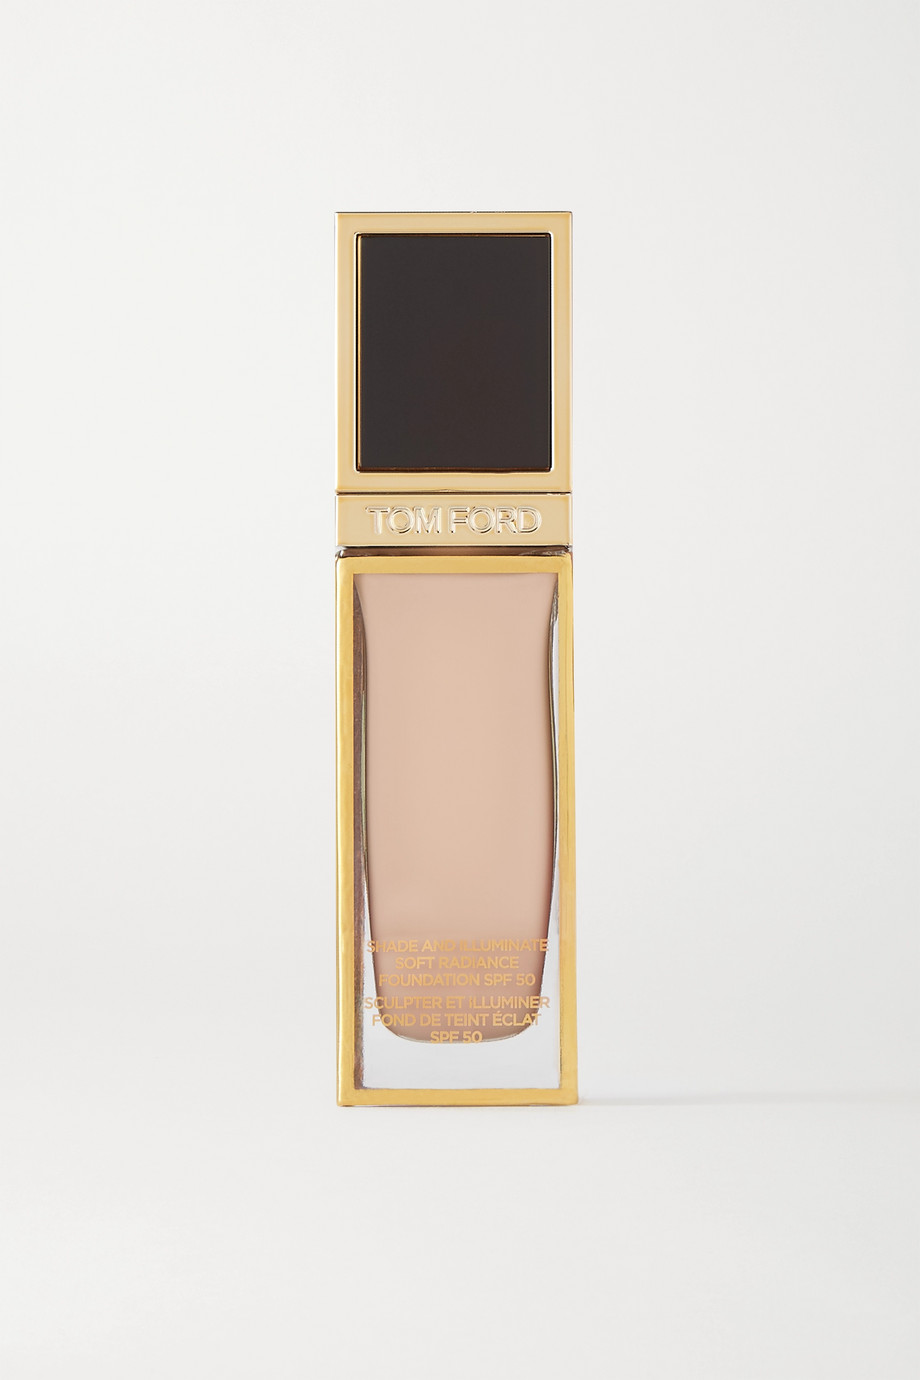 TOM FORD BEAUTY Shade and Illuminate Soft Radiance Foundation SPF50 - 3.7, 30ml